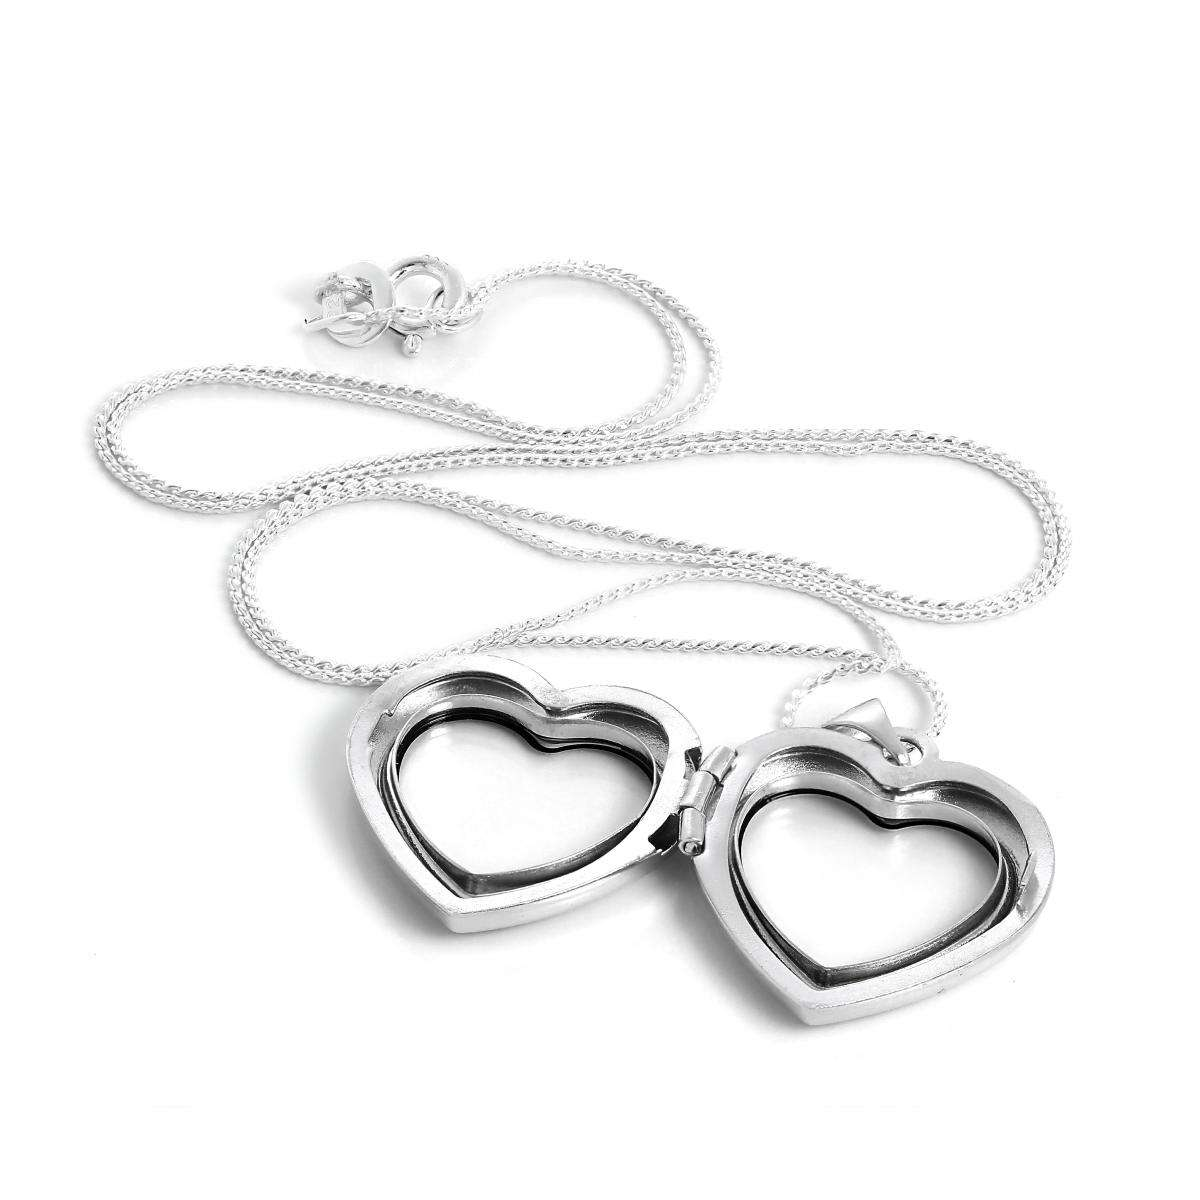 Alterative image for Sterling Silver Heart Shaped Floating Charm Locket Necklace on Chain